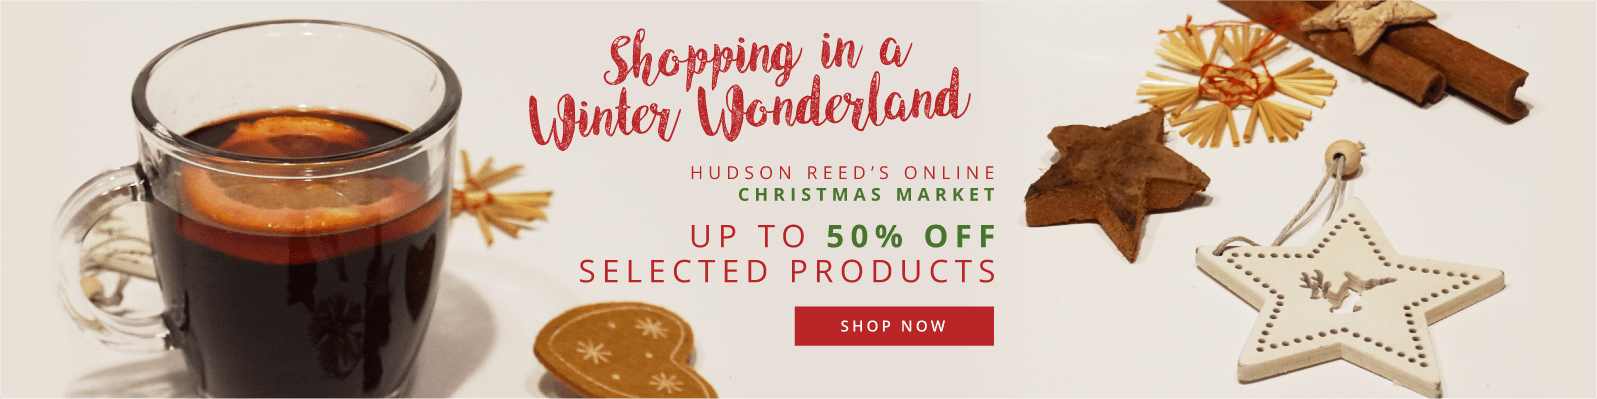 Shopping in a Winter Wonderland Hudson Reed's Online Christmas Market Up to 50% off selected products